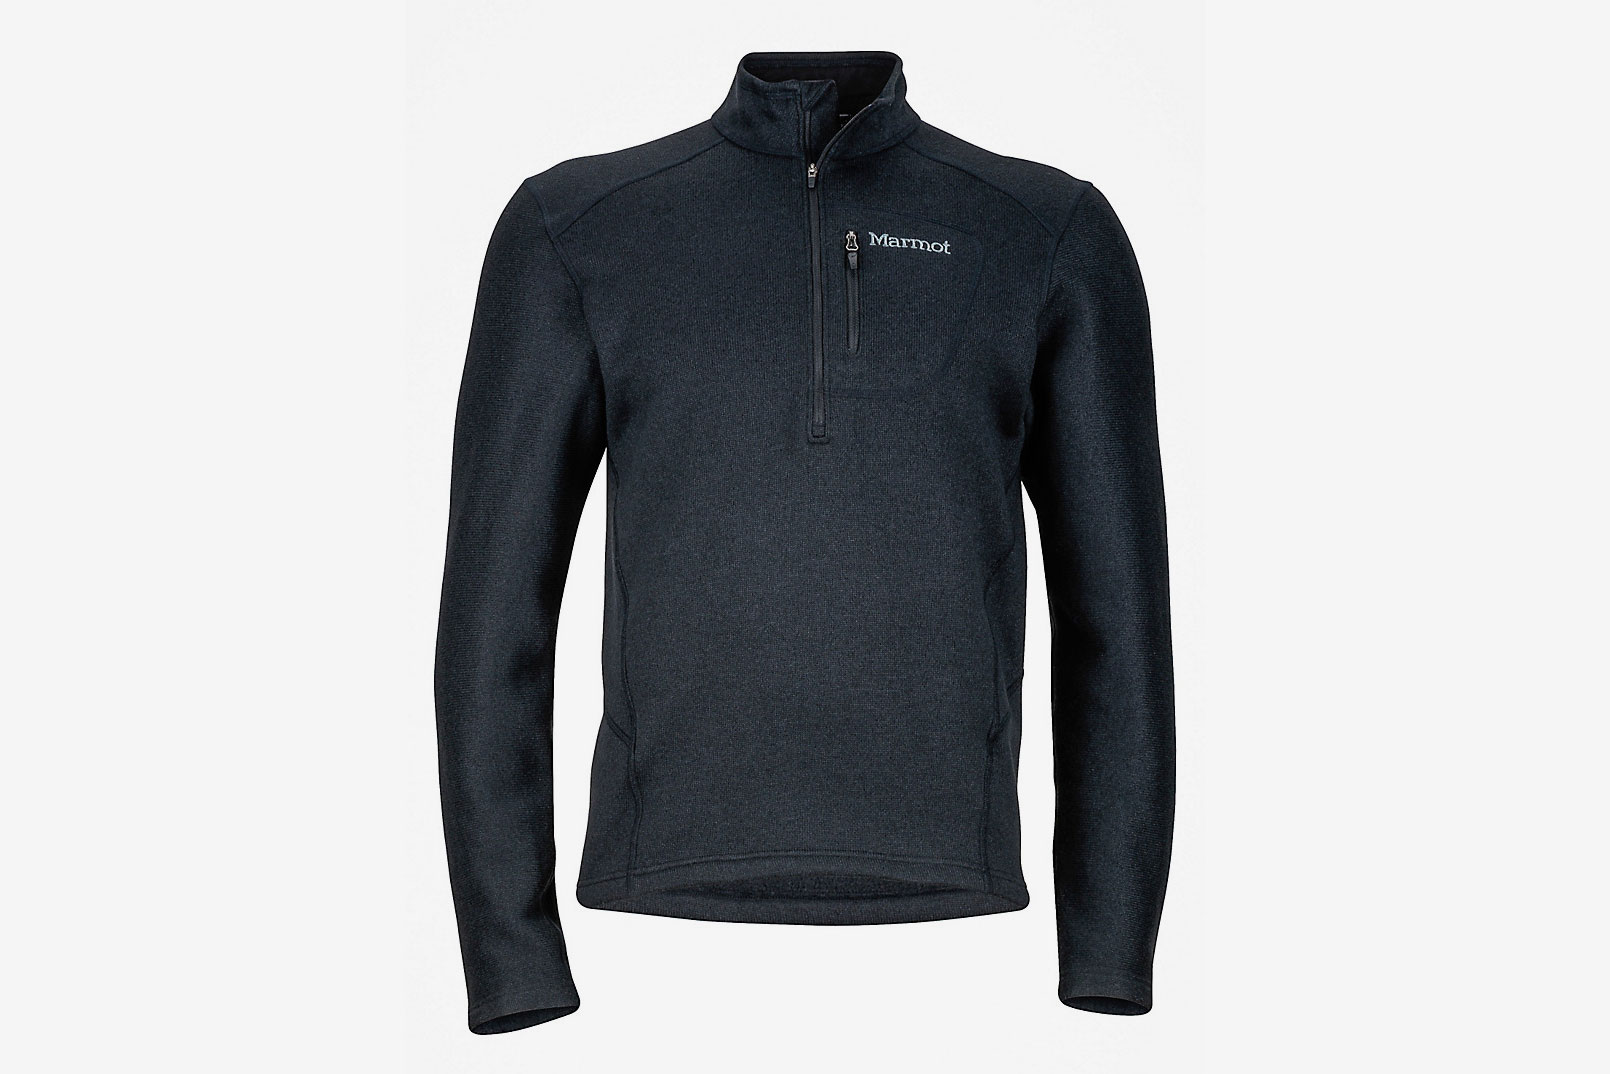 Marmot Drop Line 1/2-Zip Fleece Jacket